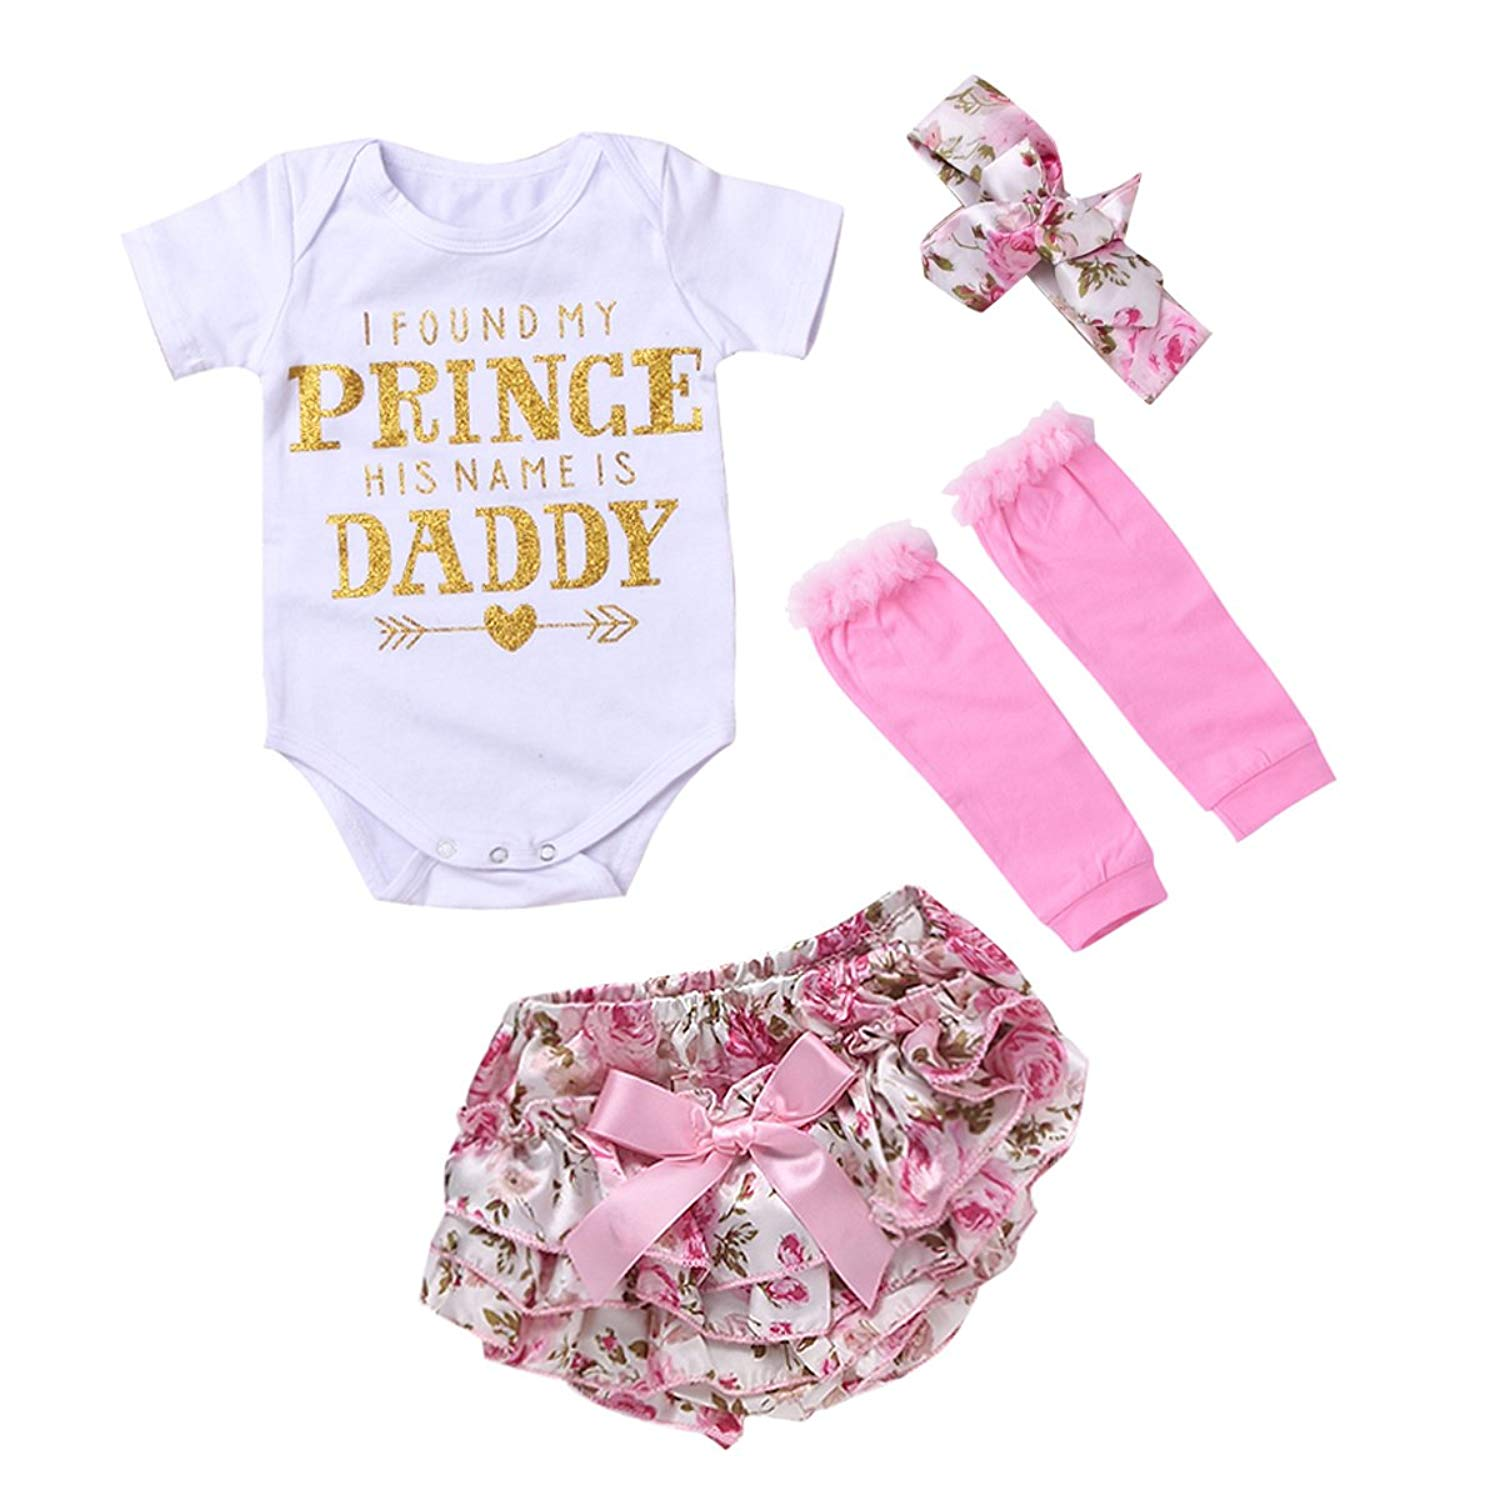 puseky Newborn Baby Letters Romper Floral Shorts Headband Leg Warmers Outfit Set